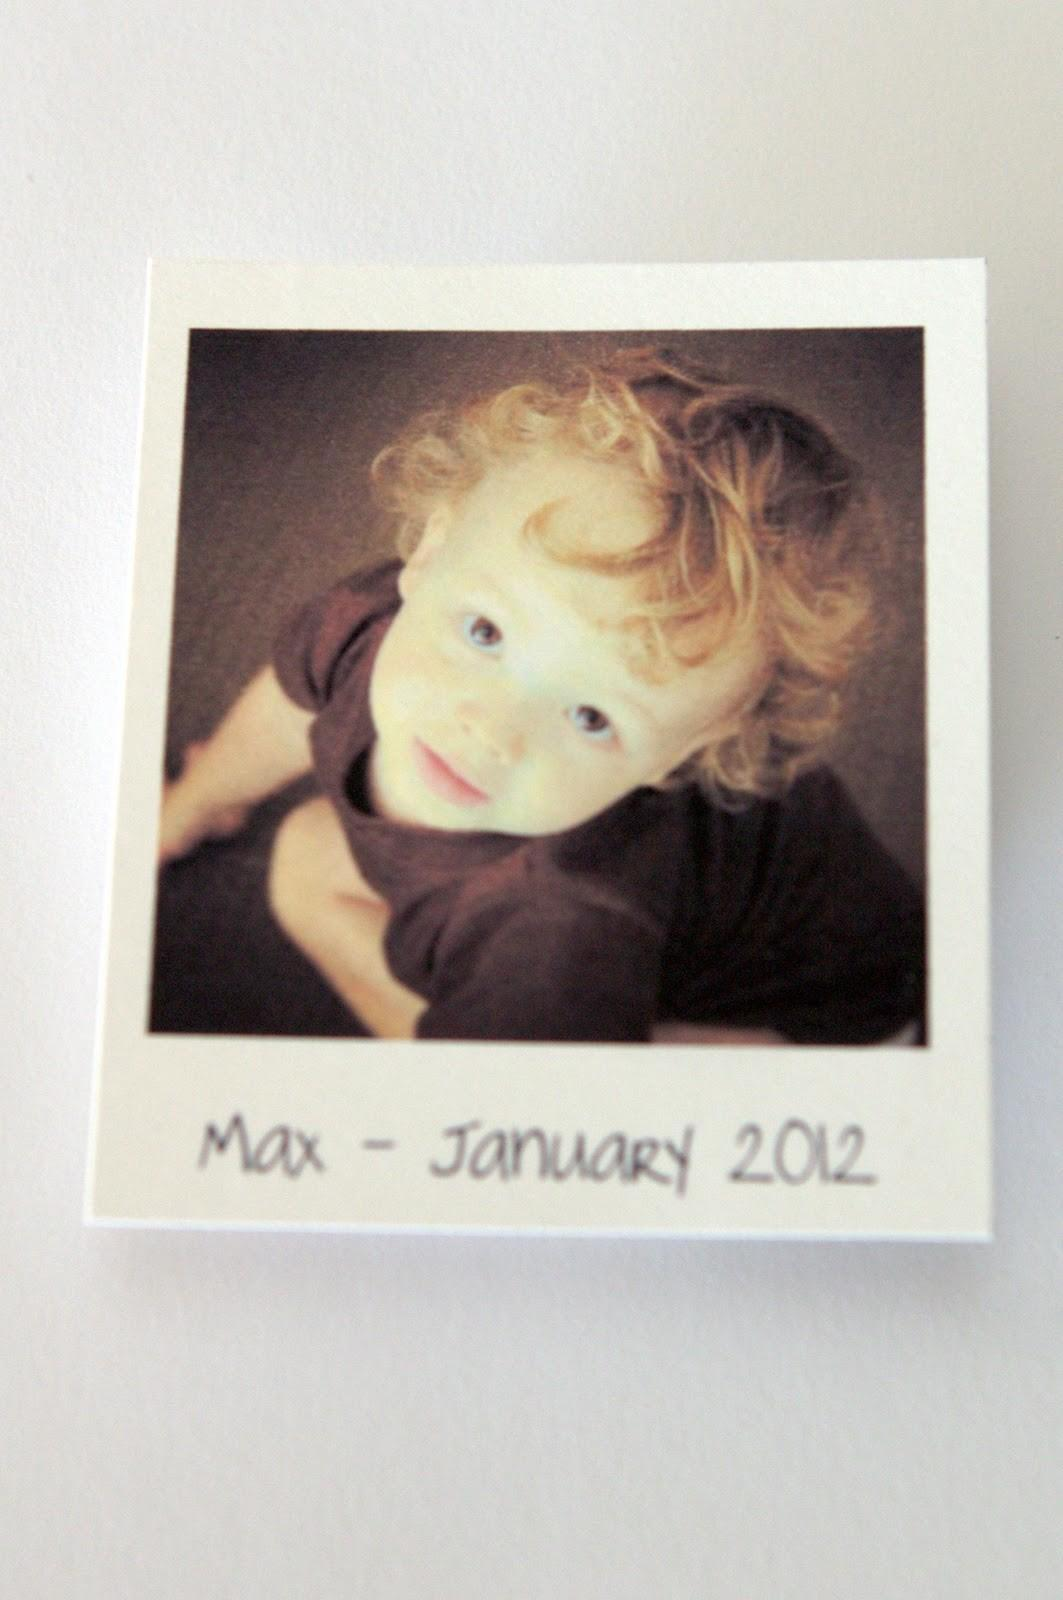 Max Diy Instagram Polaroids